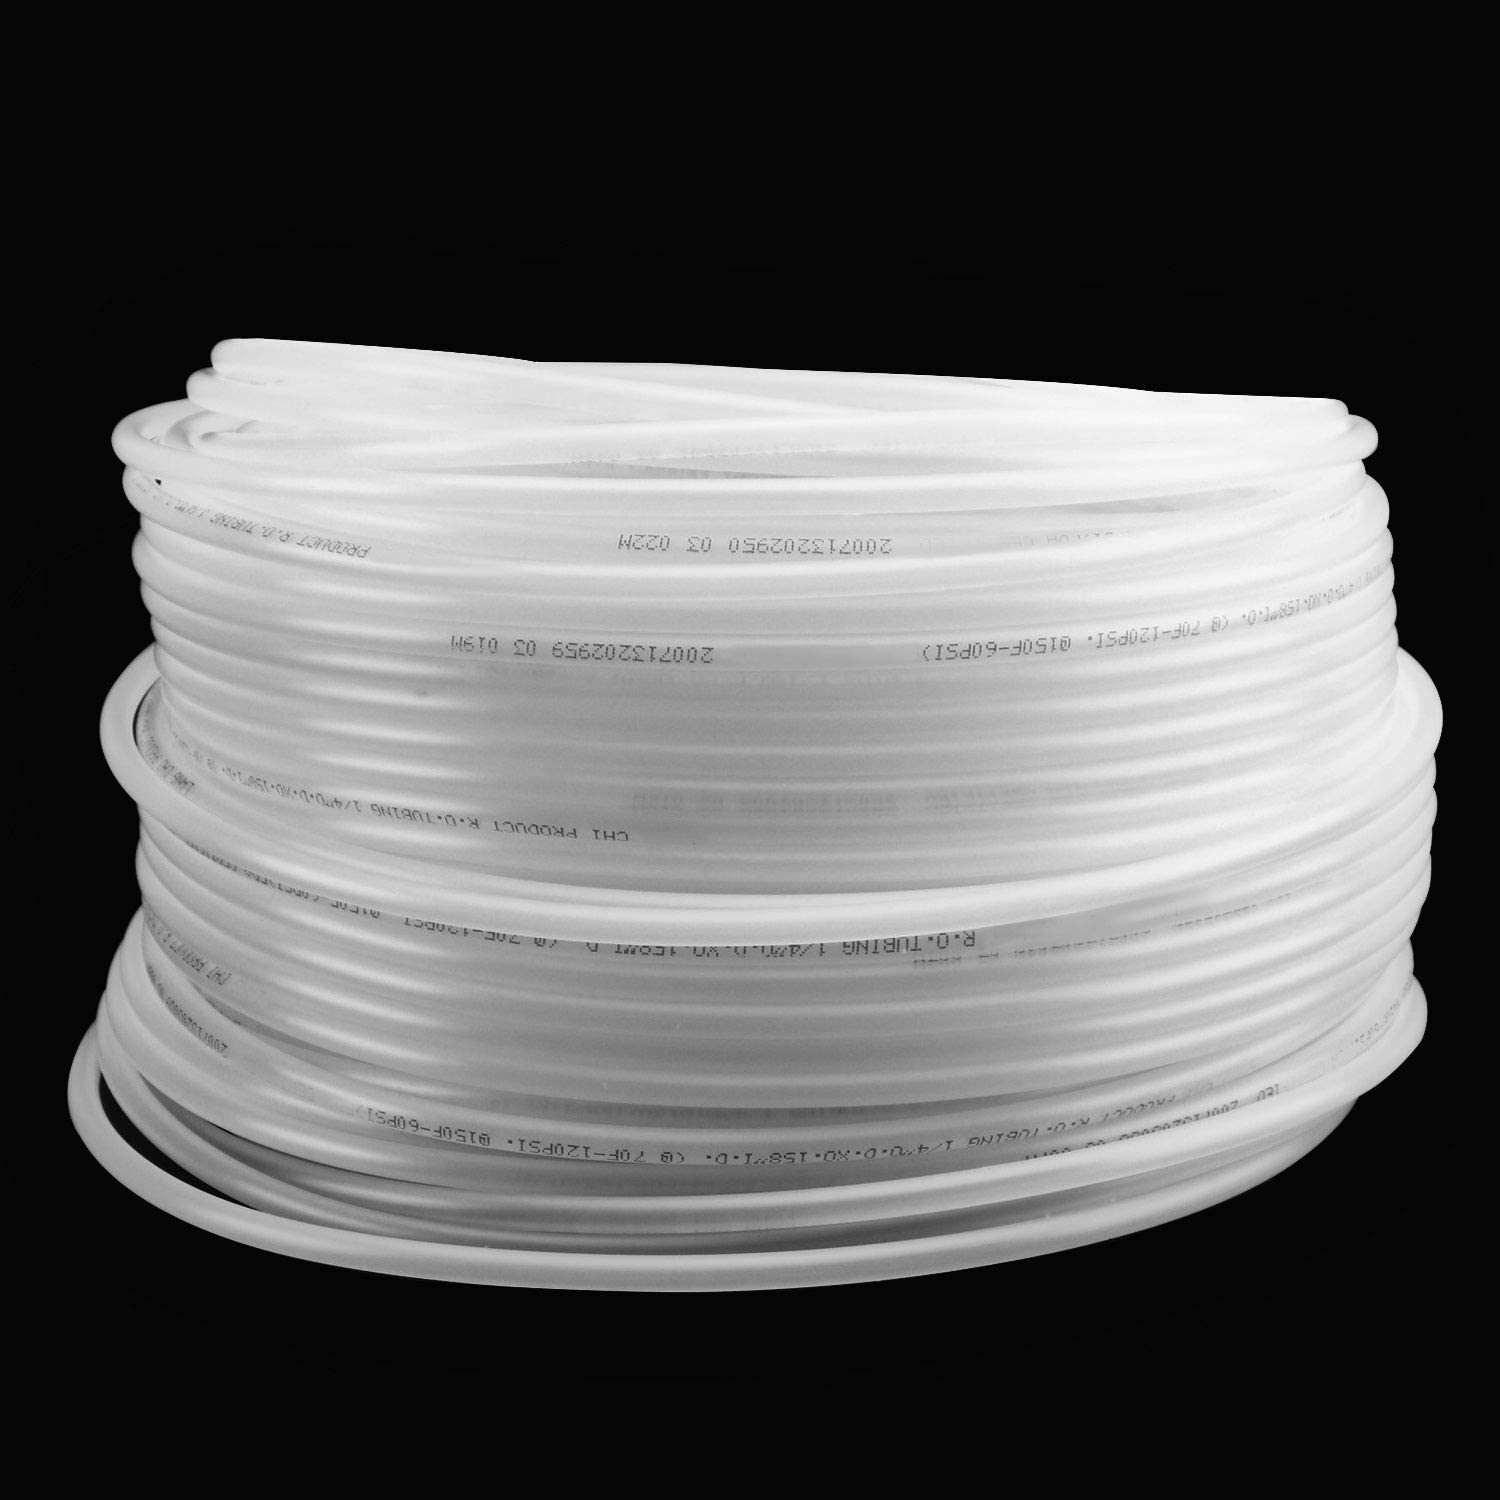 KEILEOHO RO Tubing 1/4 Inch Outside Diameter, 328 Feet Food Grade Pex Tubing, BPA Free, Translucent PE tubing for Reverse Osmosis Systems and Water Filters, Aquariums, Coffee Machine